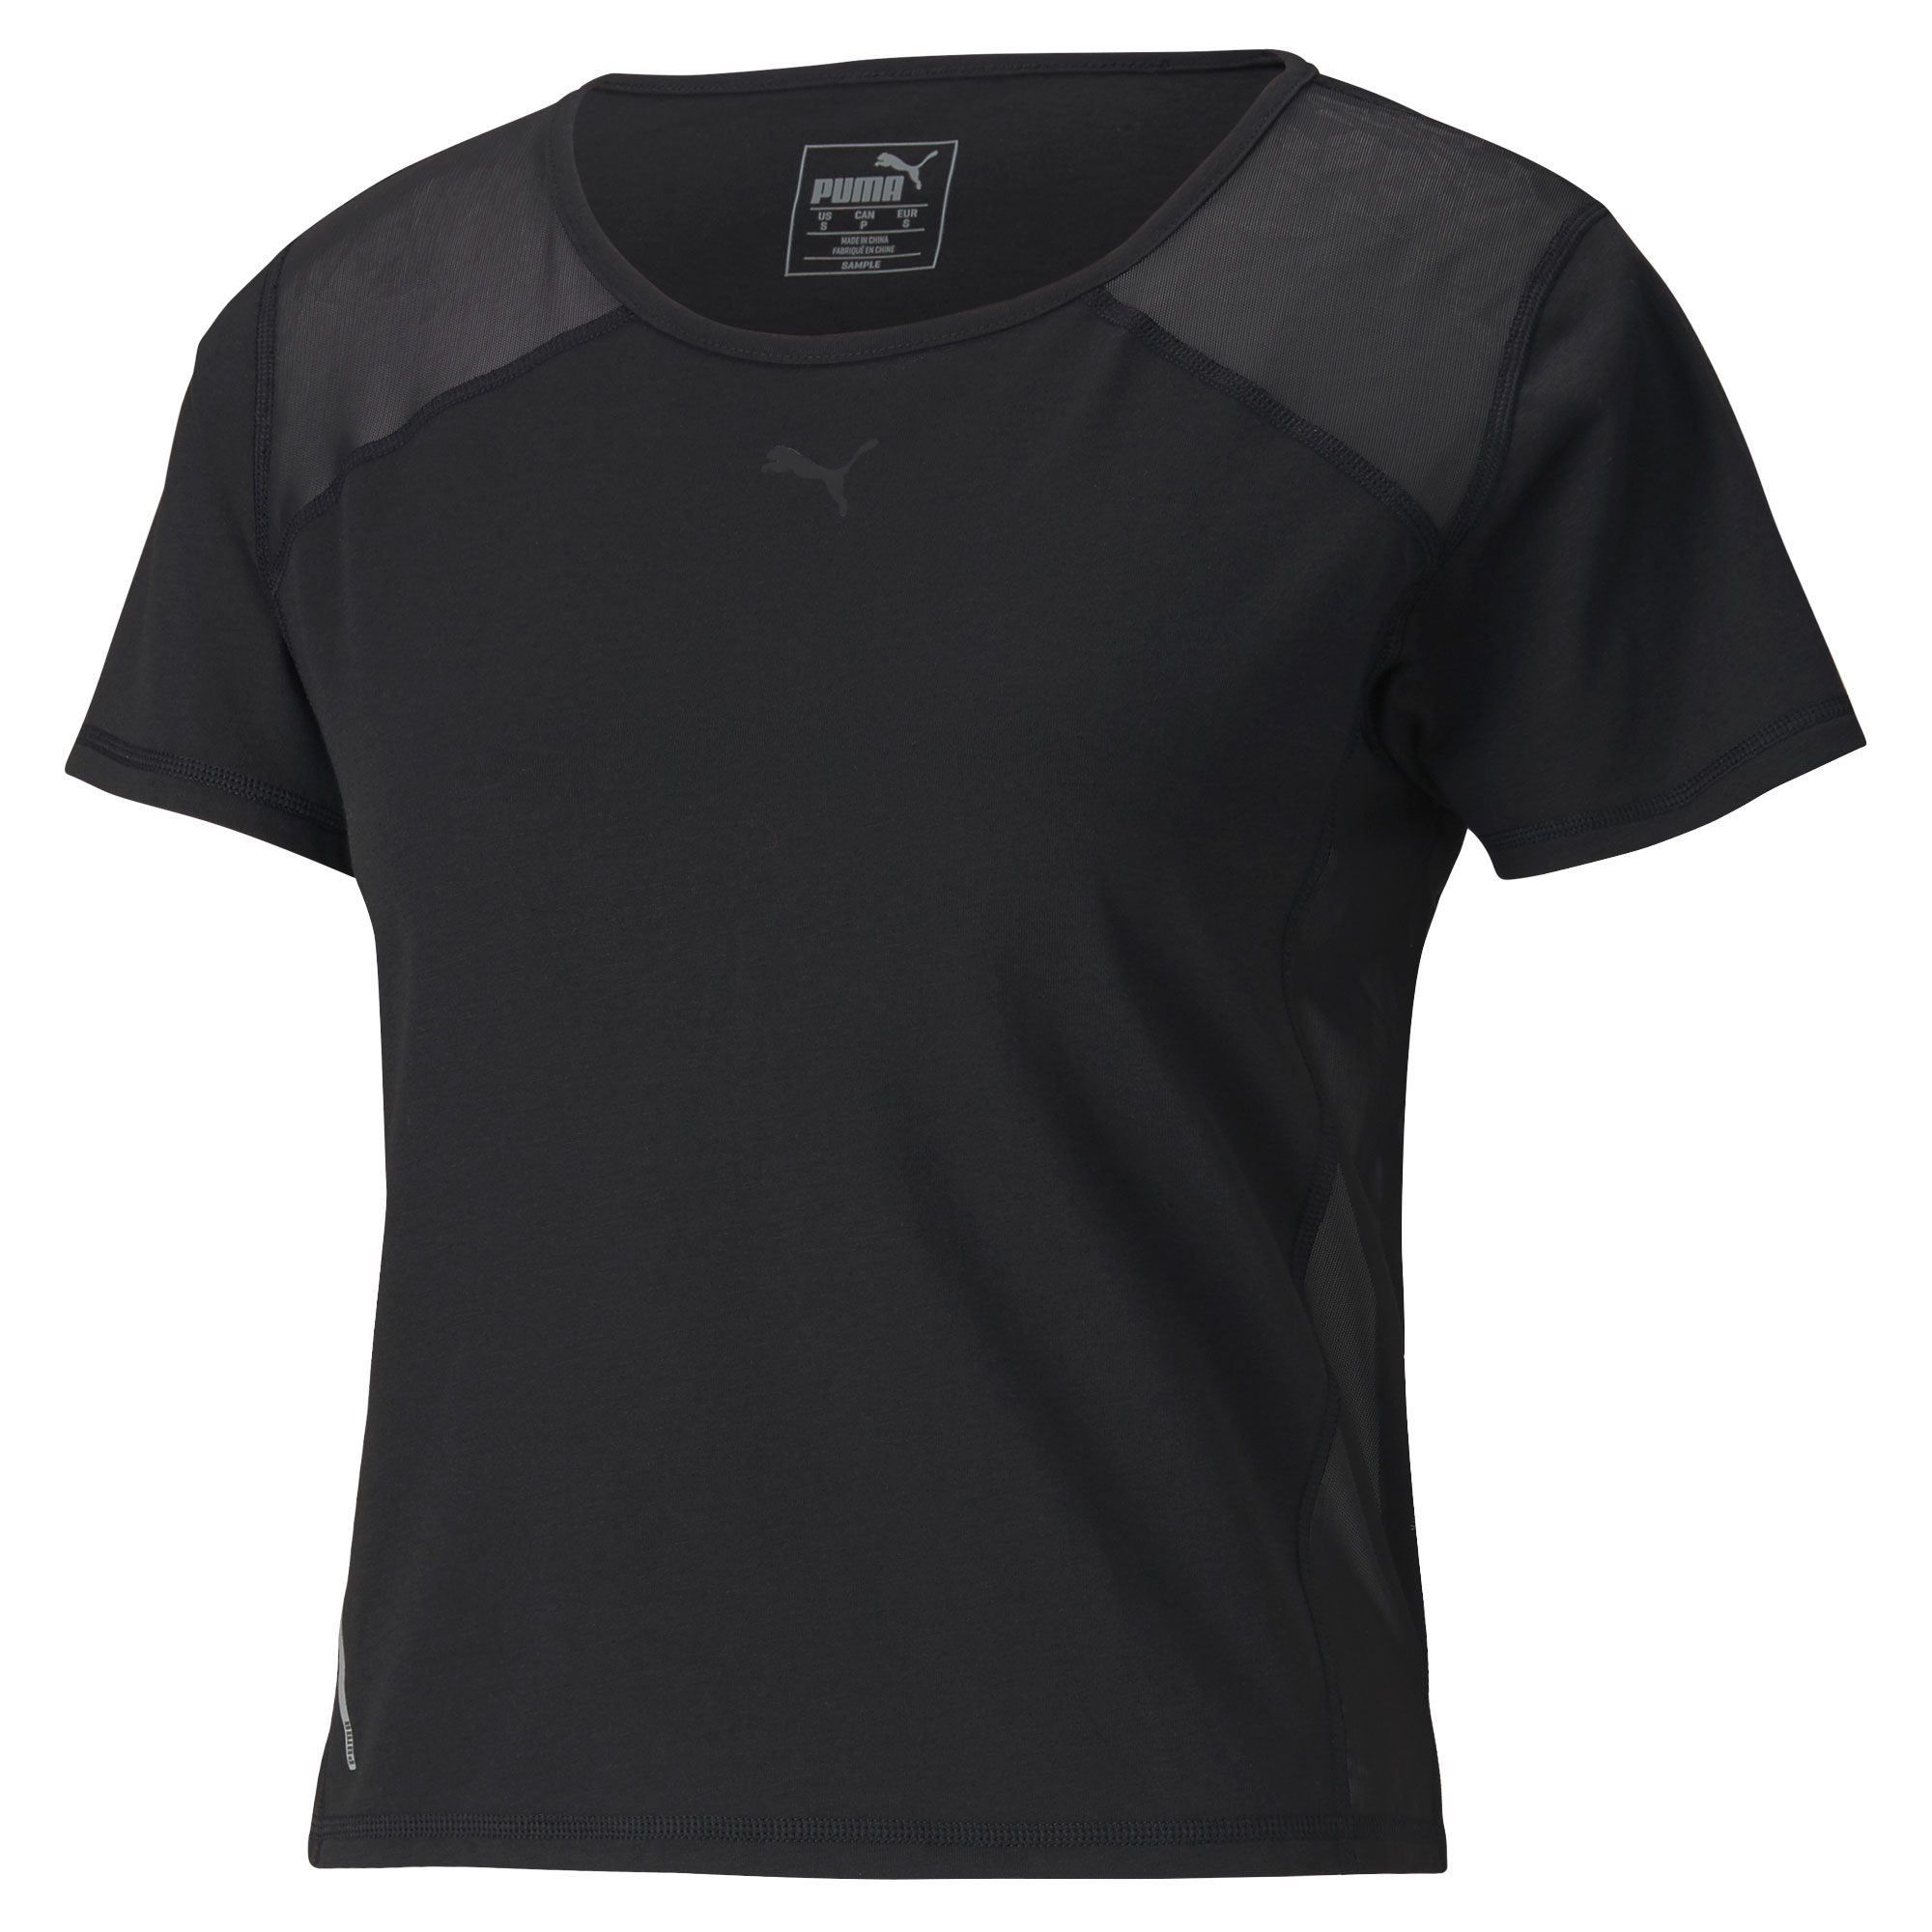 Puma Women's Be Bold Mesh Tee Running Training Shirt 518926-01